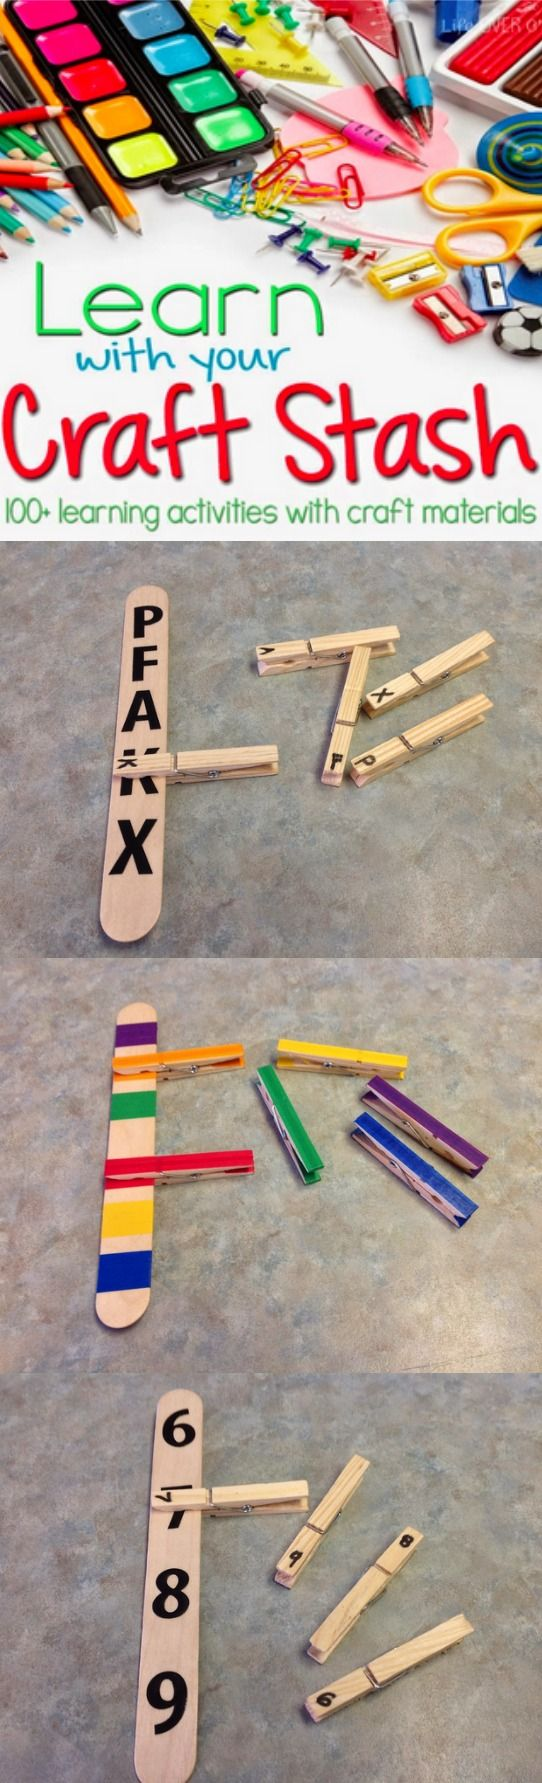 I use clothespins for teaching a variety of skills in my classroom. I love that they can be used with students across abilities for a wide range of learning activities. #Autism | found on Adventures in the ATC - a blog about my experiences teaching students with Autism